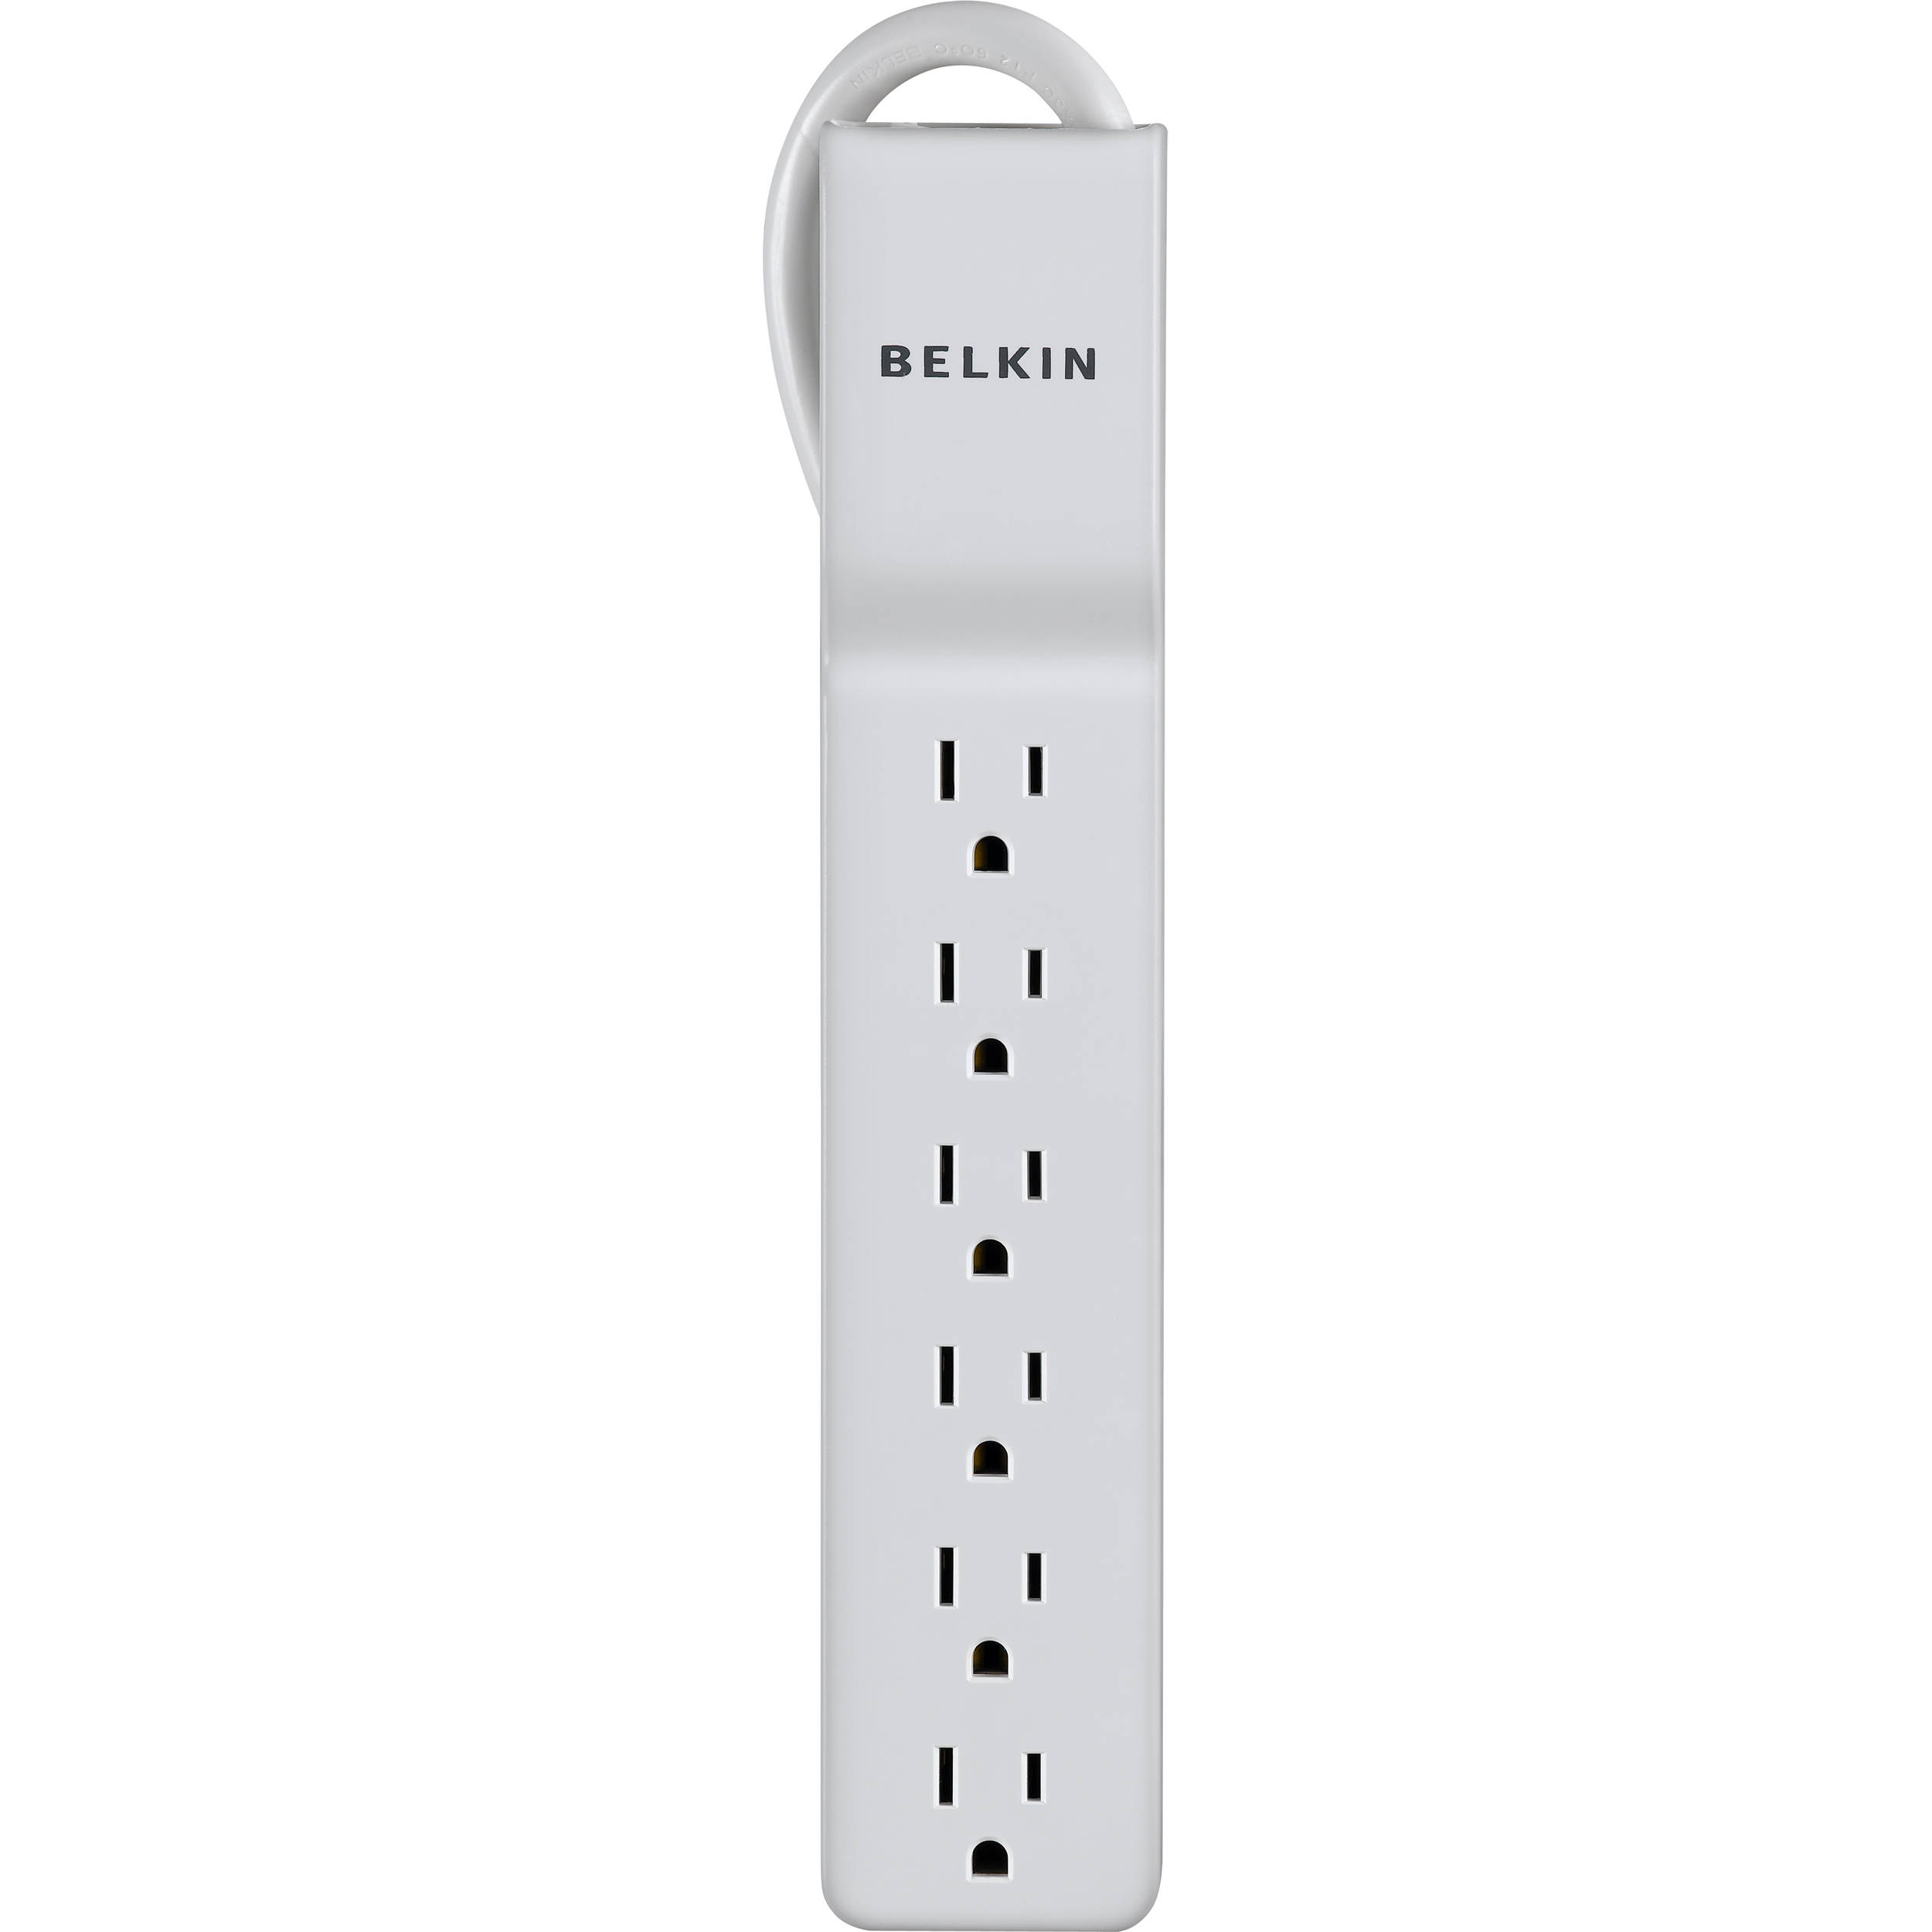 Belkin Office Ces Belkin 6outlet Homeoffice Surge Protector 10 Cord White Picclick Belkin 6outlet Homeoffice Surge Protector Be10600010 Bh